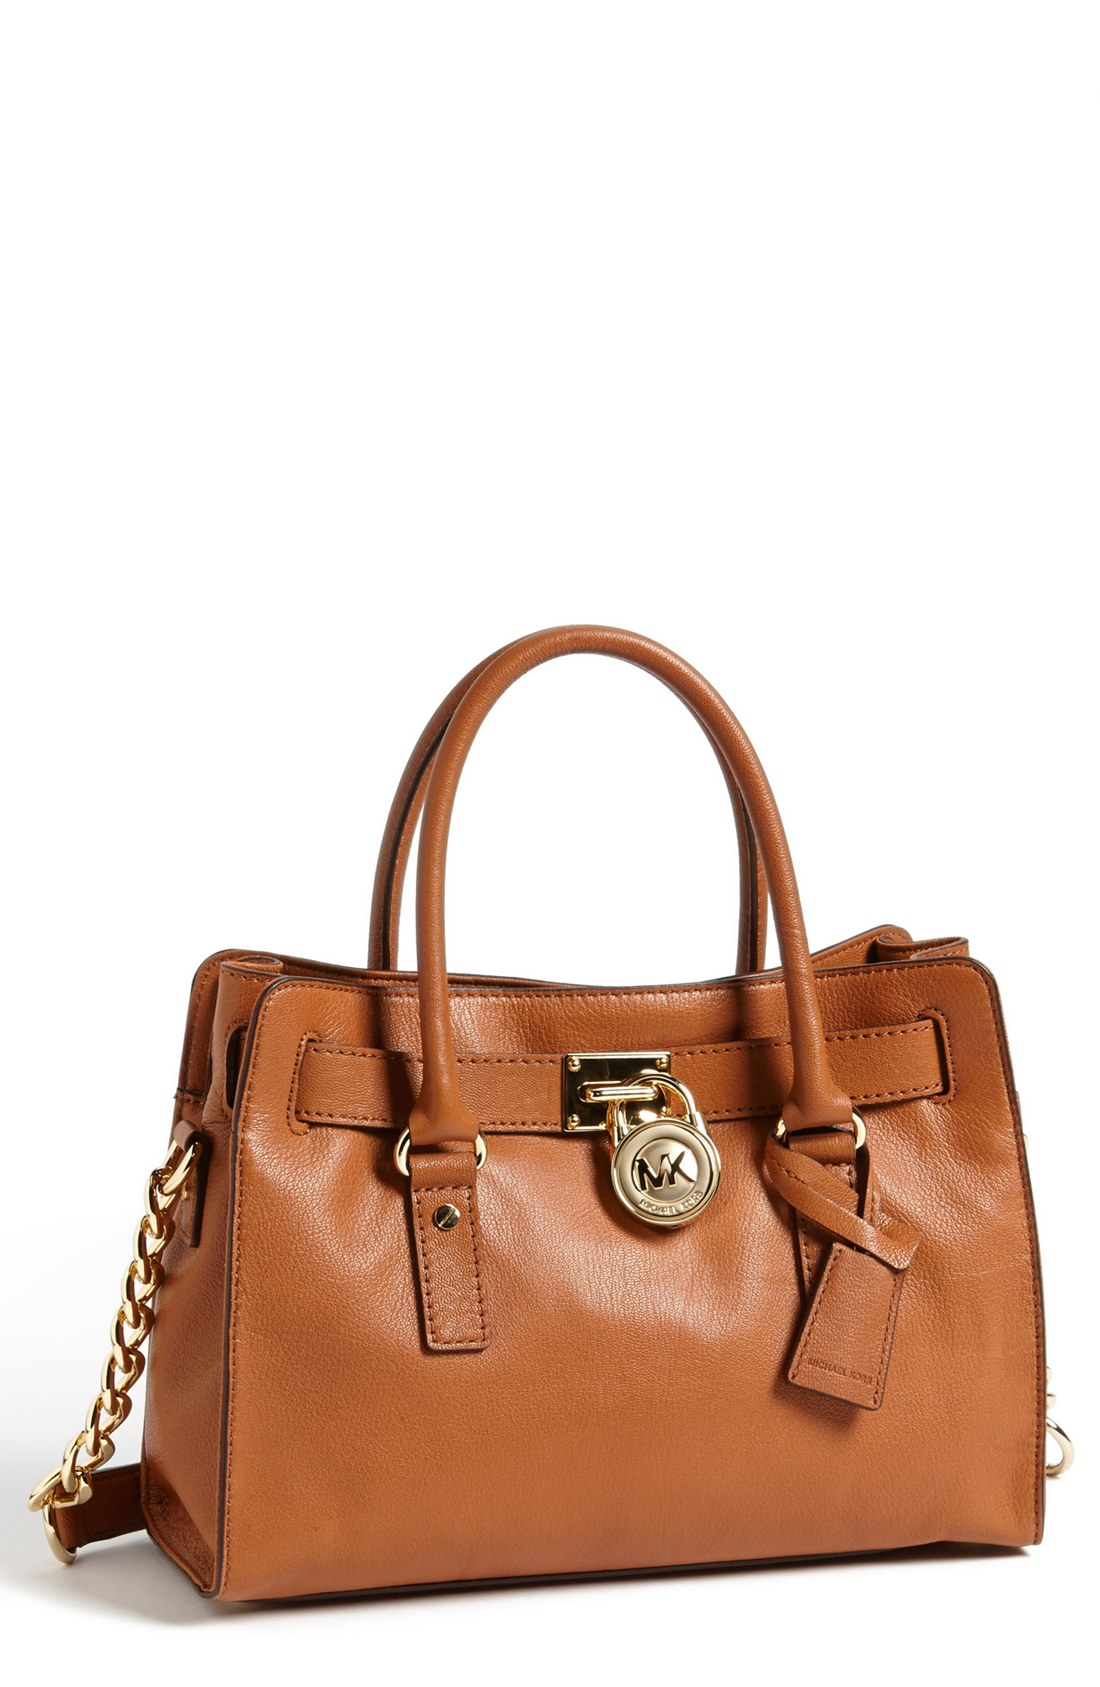 Free shipping on women's handbags & accessories on sale at newsubsteam.ml Shop the best brands on sale at newsubsteam.ml Totally free shipping & returns.